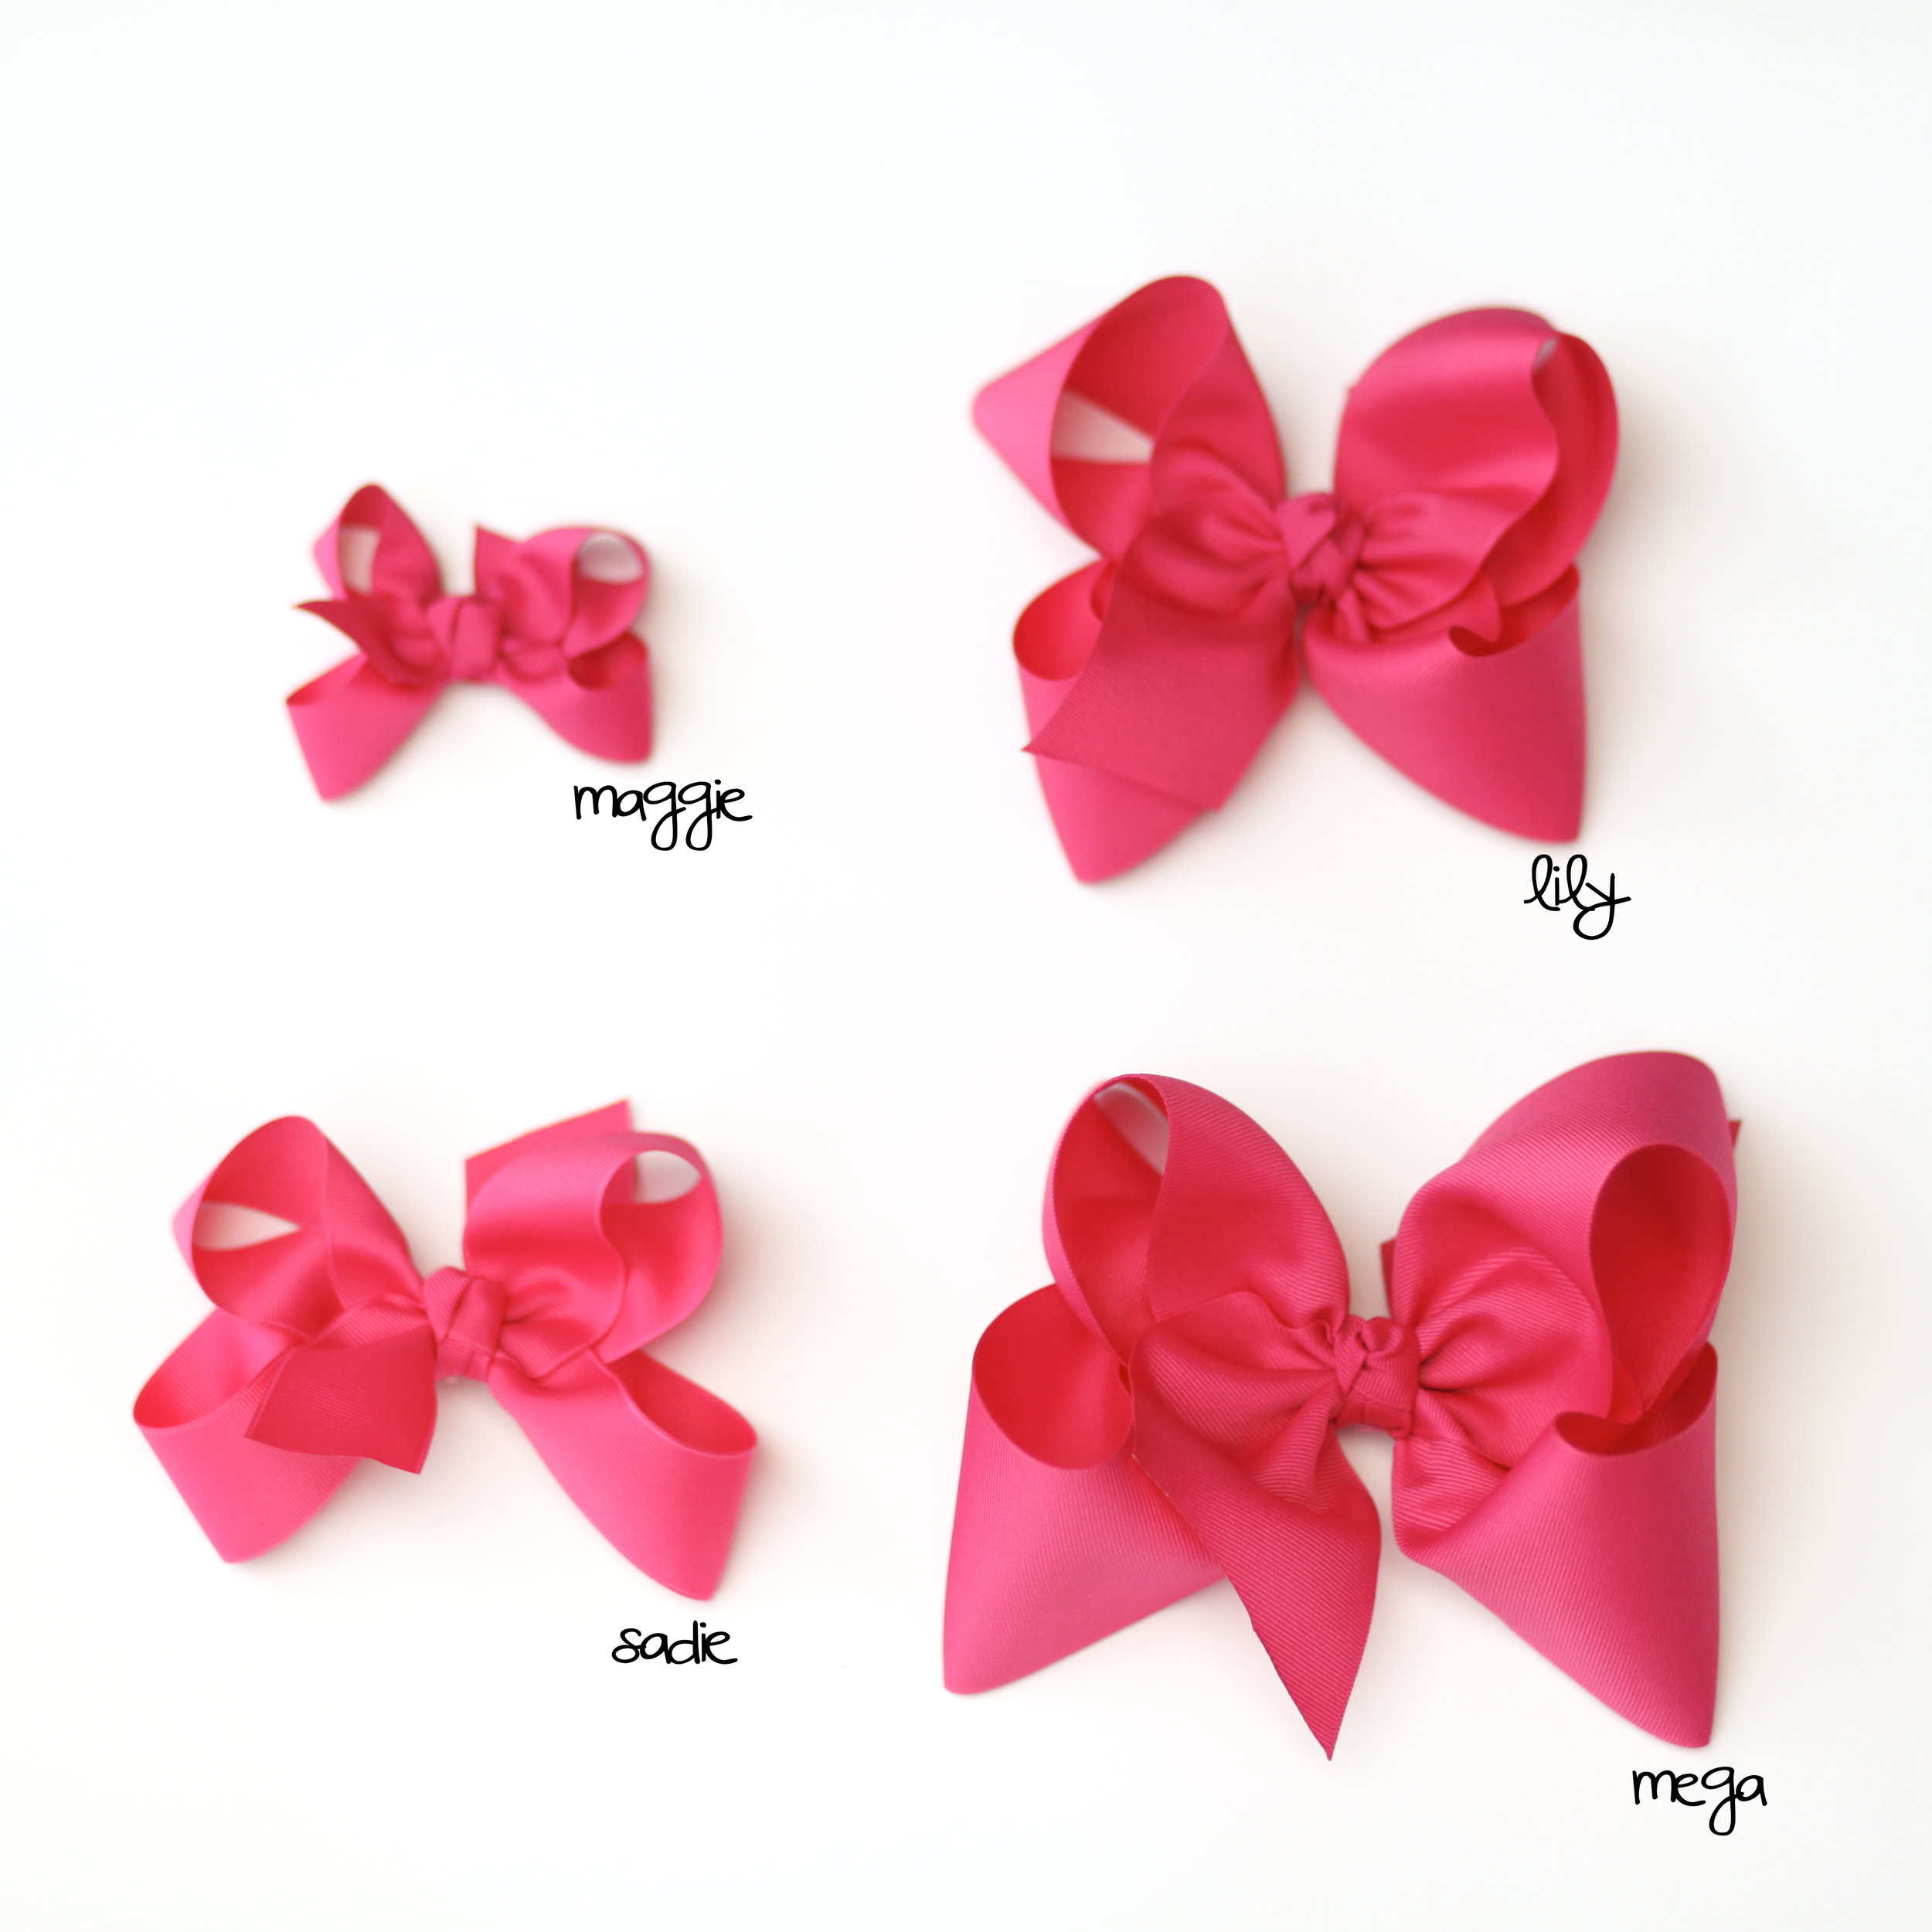 Mega Bows are 8in wide and made from 3in Grosgrain Ribbon.    Lily Bows are 6in wide and made from 2.25in Grosgrain Ribbon.    Sadie Bows are 4.5in wide and made from 1.5in Grosgrain Ribbon.    Maggie Bows are 3in wide and made from .75in Grosgrain Ribbon.